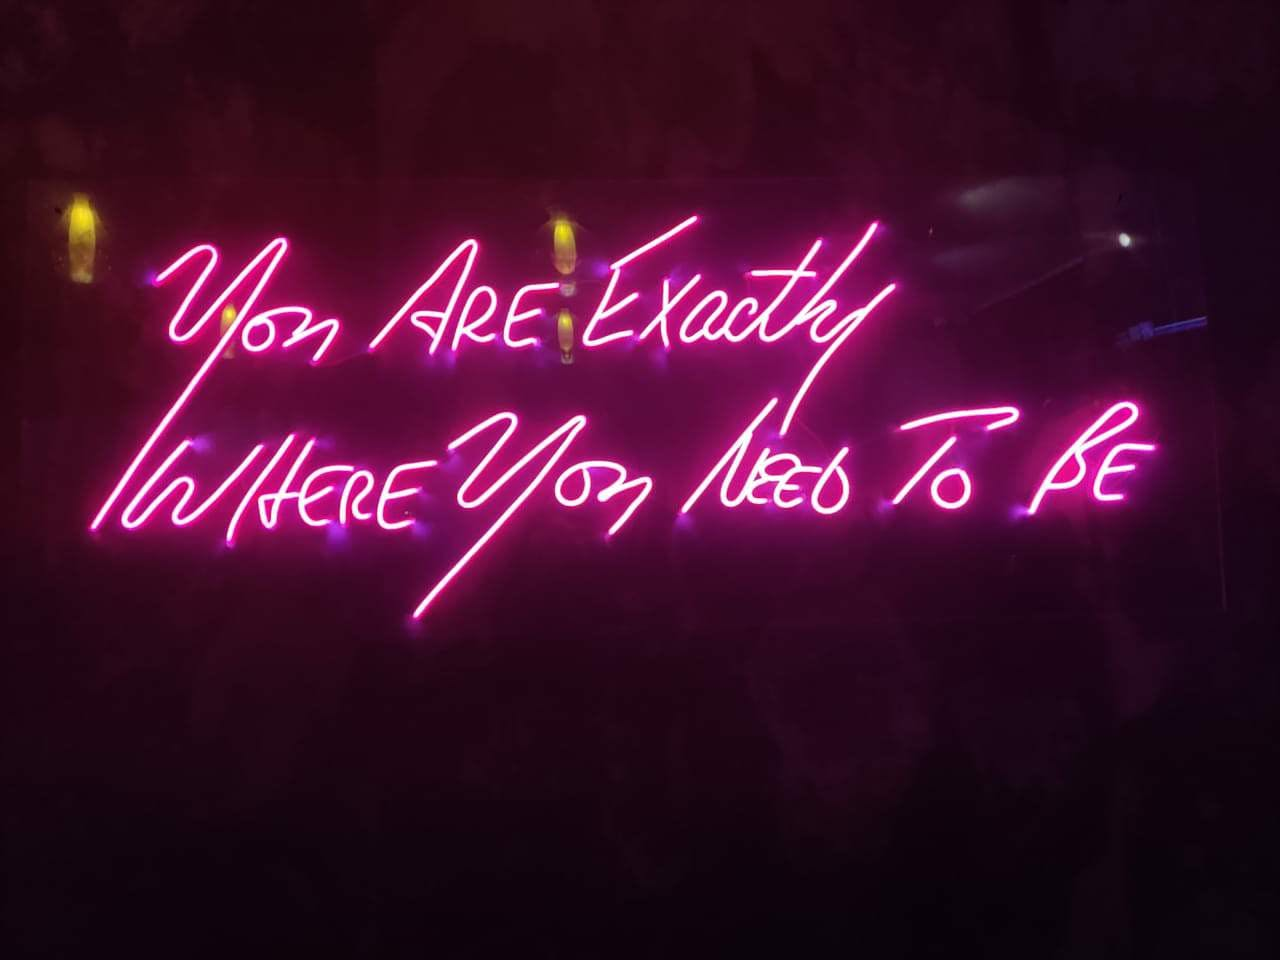 Text,Neon sign,Neon,Pink,Light,Font,Electronic signage,Visual effect lighting,Lighting,Magenta